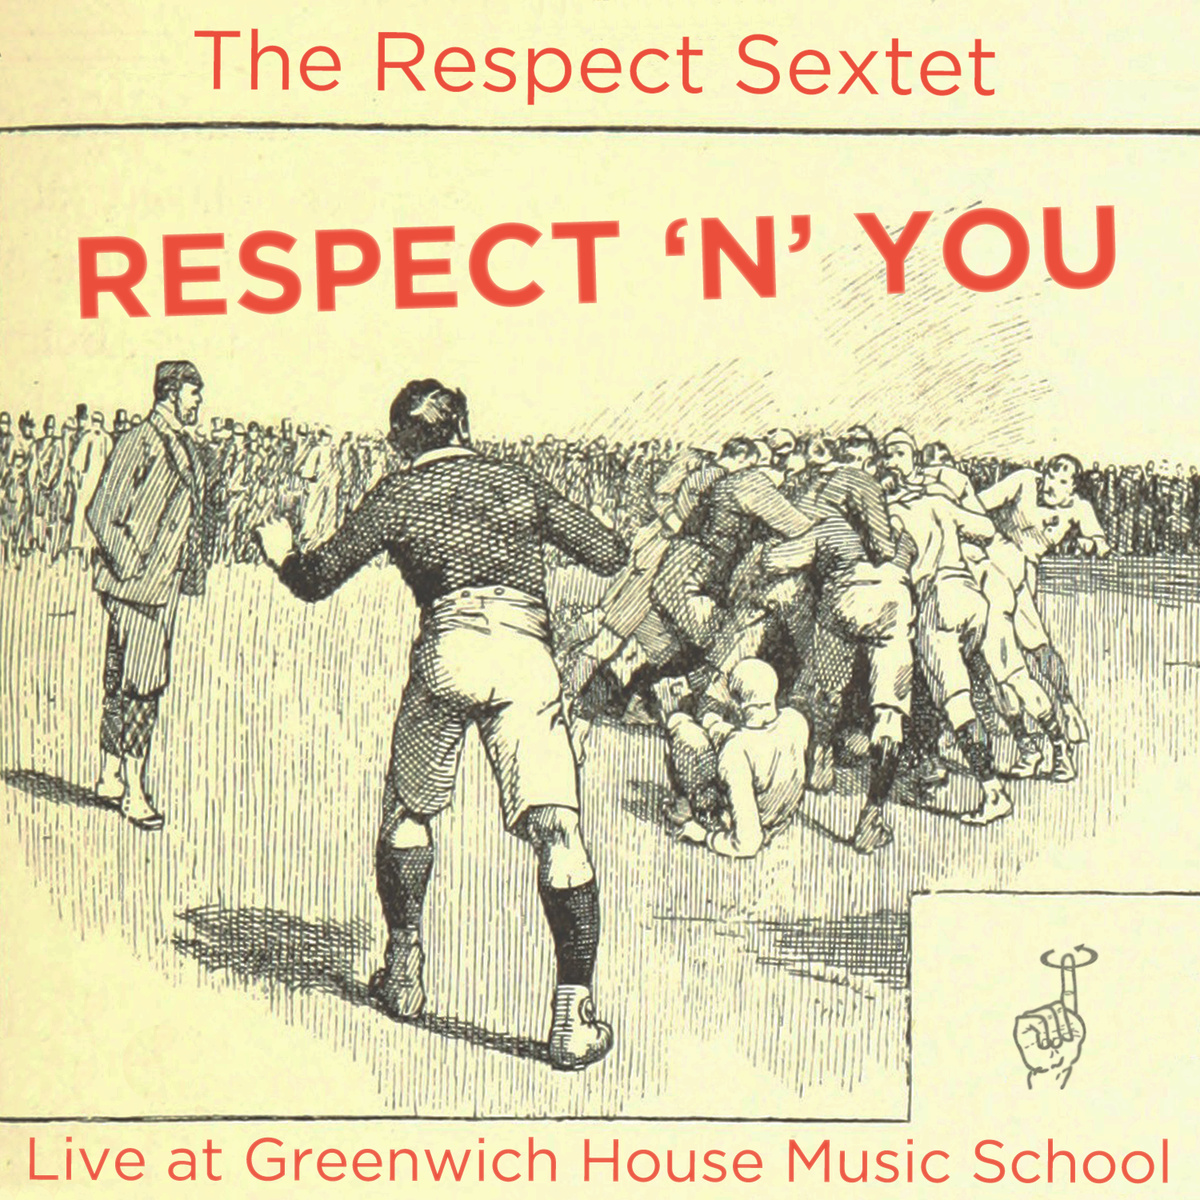 Respect 'N' You (The Respect Sextet, 2015)